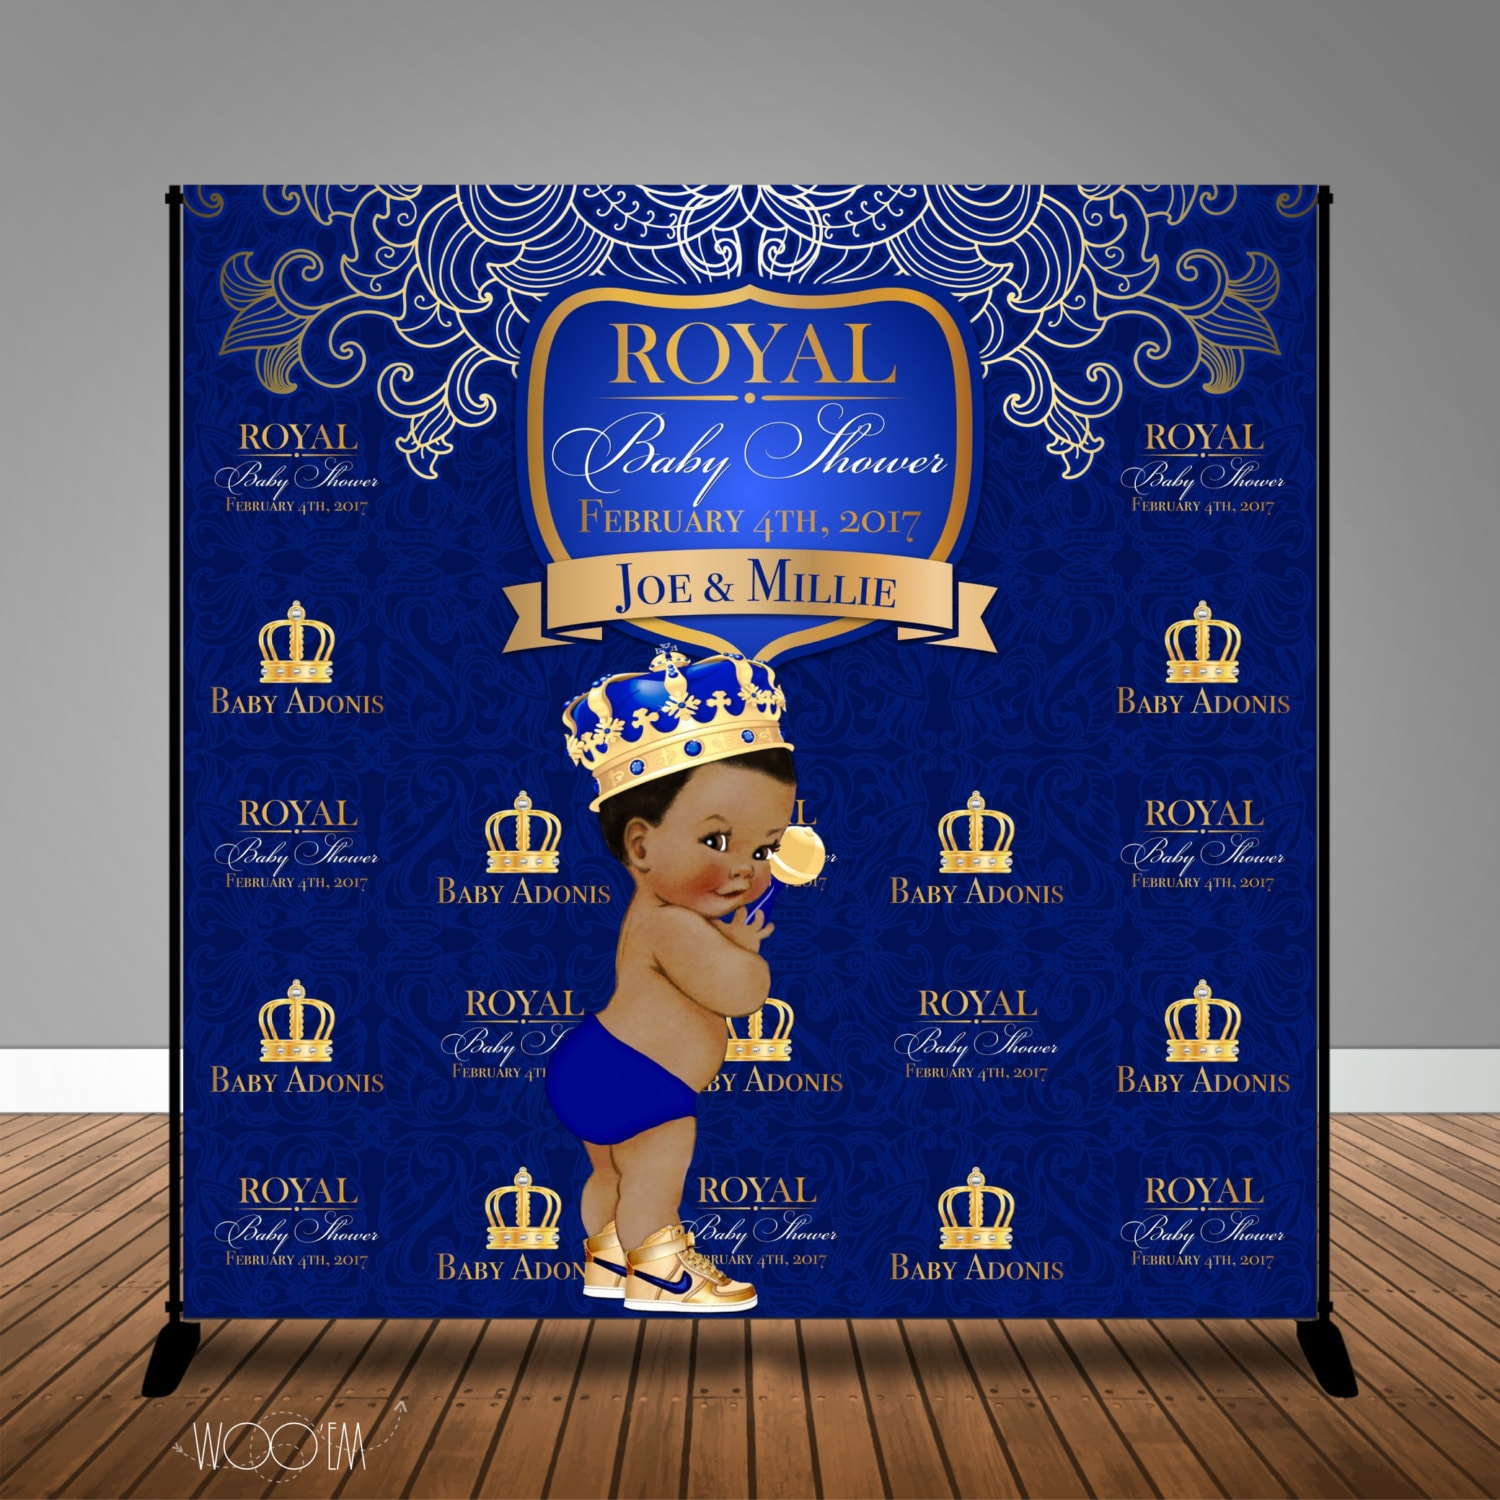 Royal Baby Shower Blue 8x8 Backdrop / Step & Repeat Design